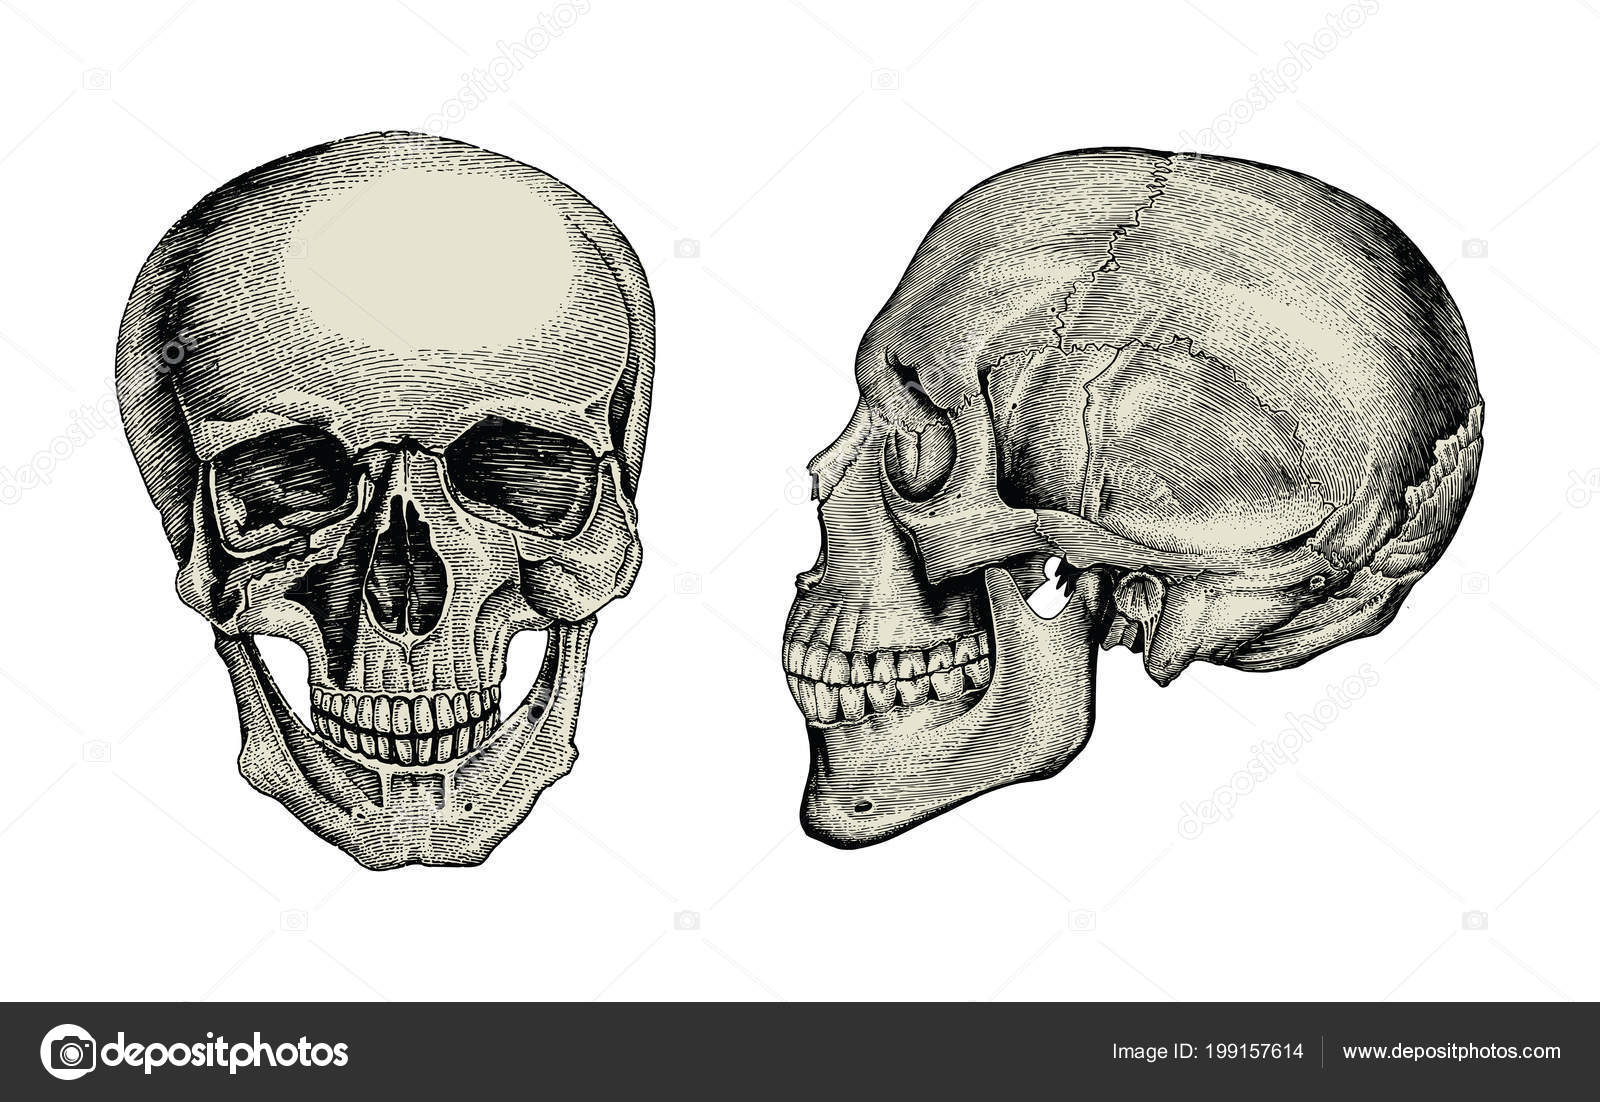 Anatomy Skull Hand Drawing Vintage Lateral Front View Human Skull ...